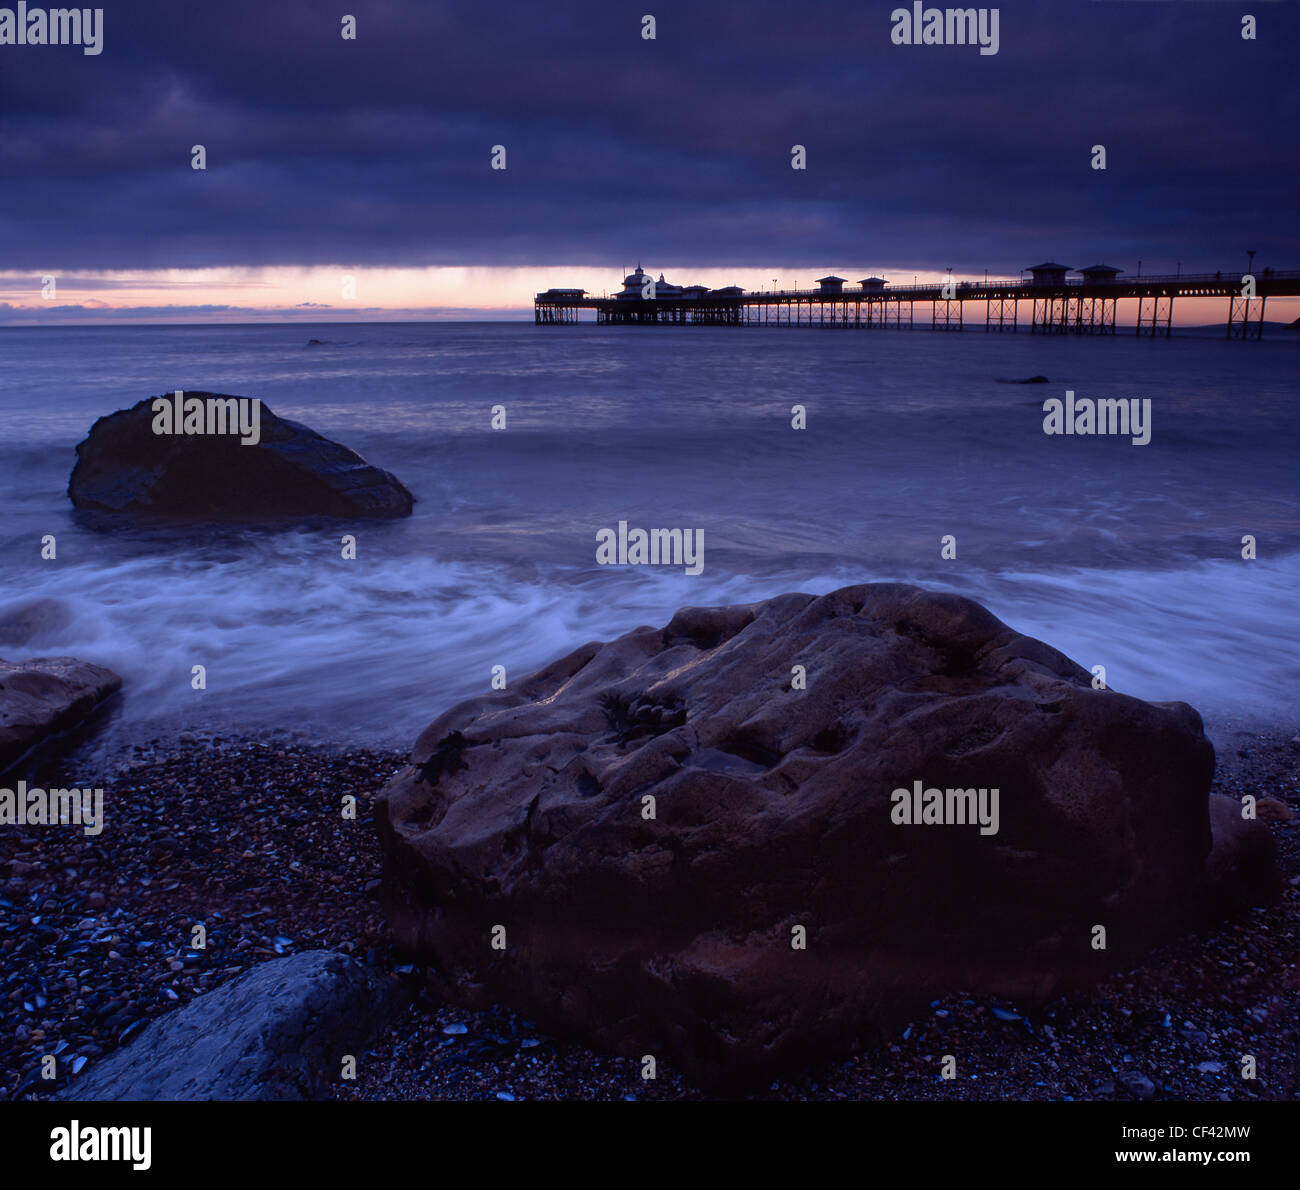 View over large boulders on the seashore towards Llandudno Pier at dusk. - Stock Image